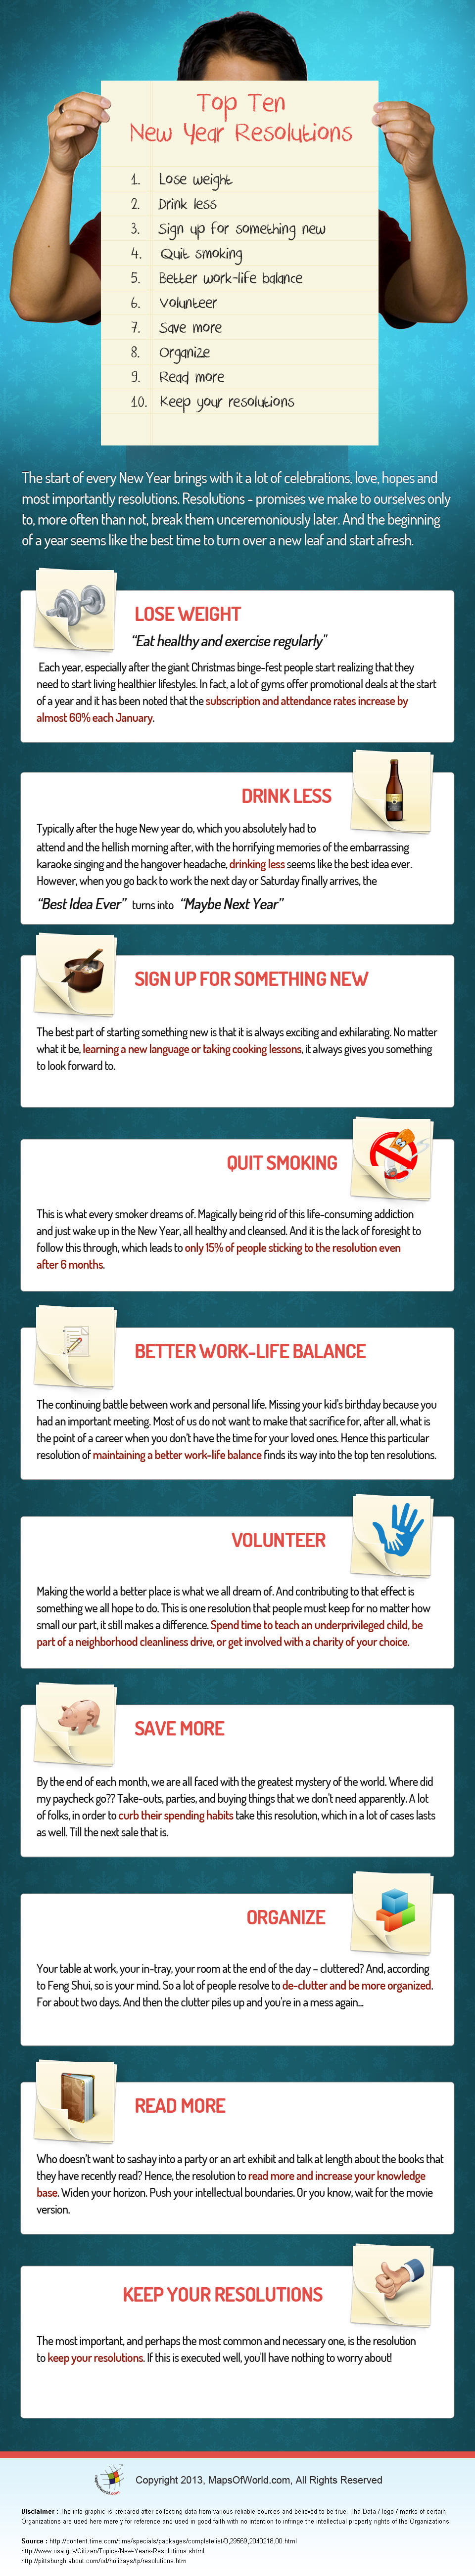 Infographic on New Year Resolutions